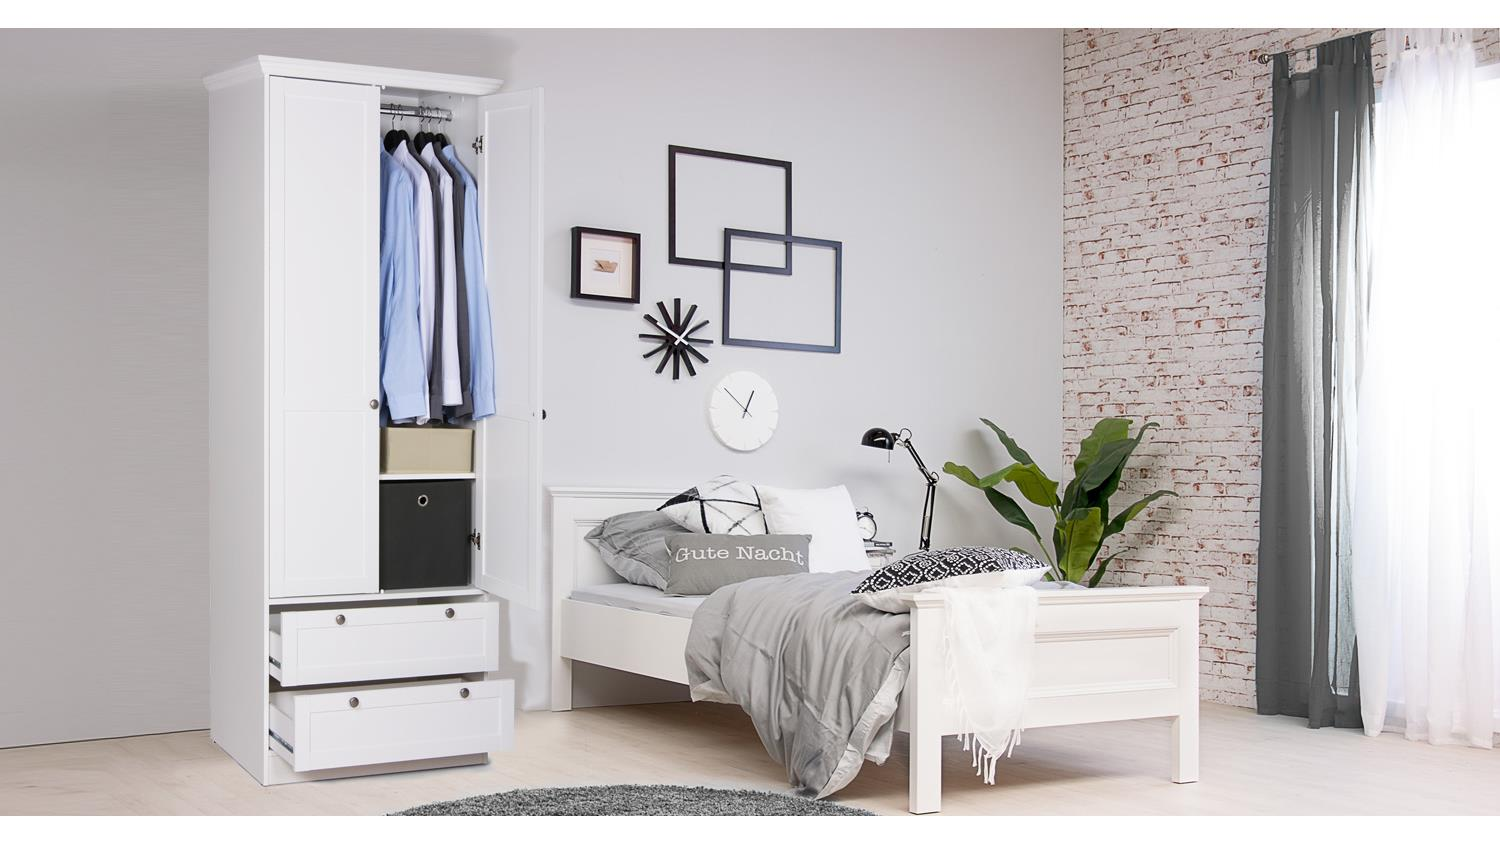 kleiderschrank landwood schrank in wei mit 2 schubk sten landhausstil. Black Bedroom Furniture Sets. Home Design Ideas